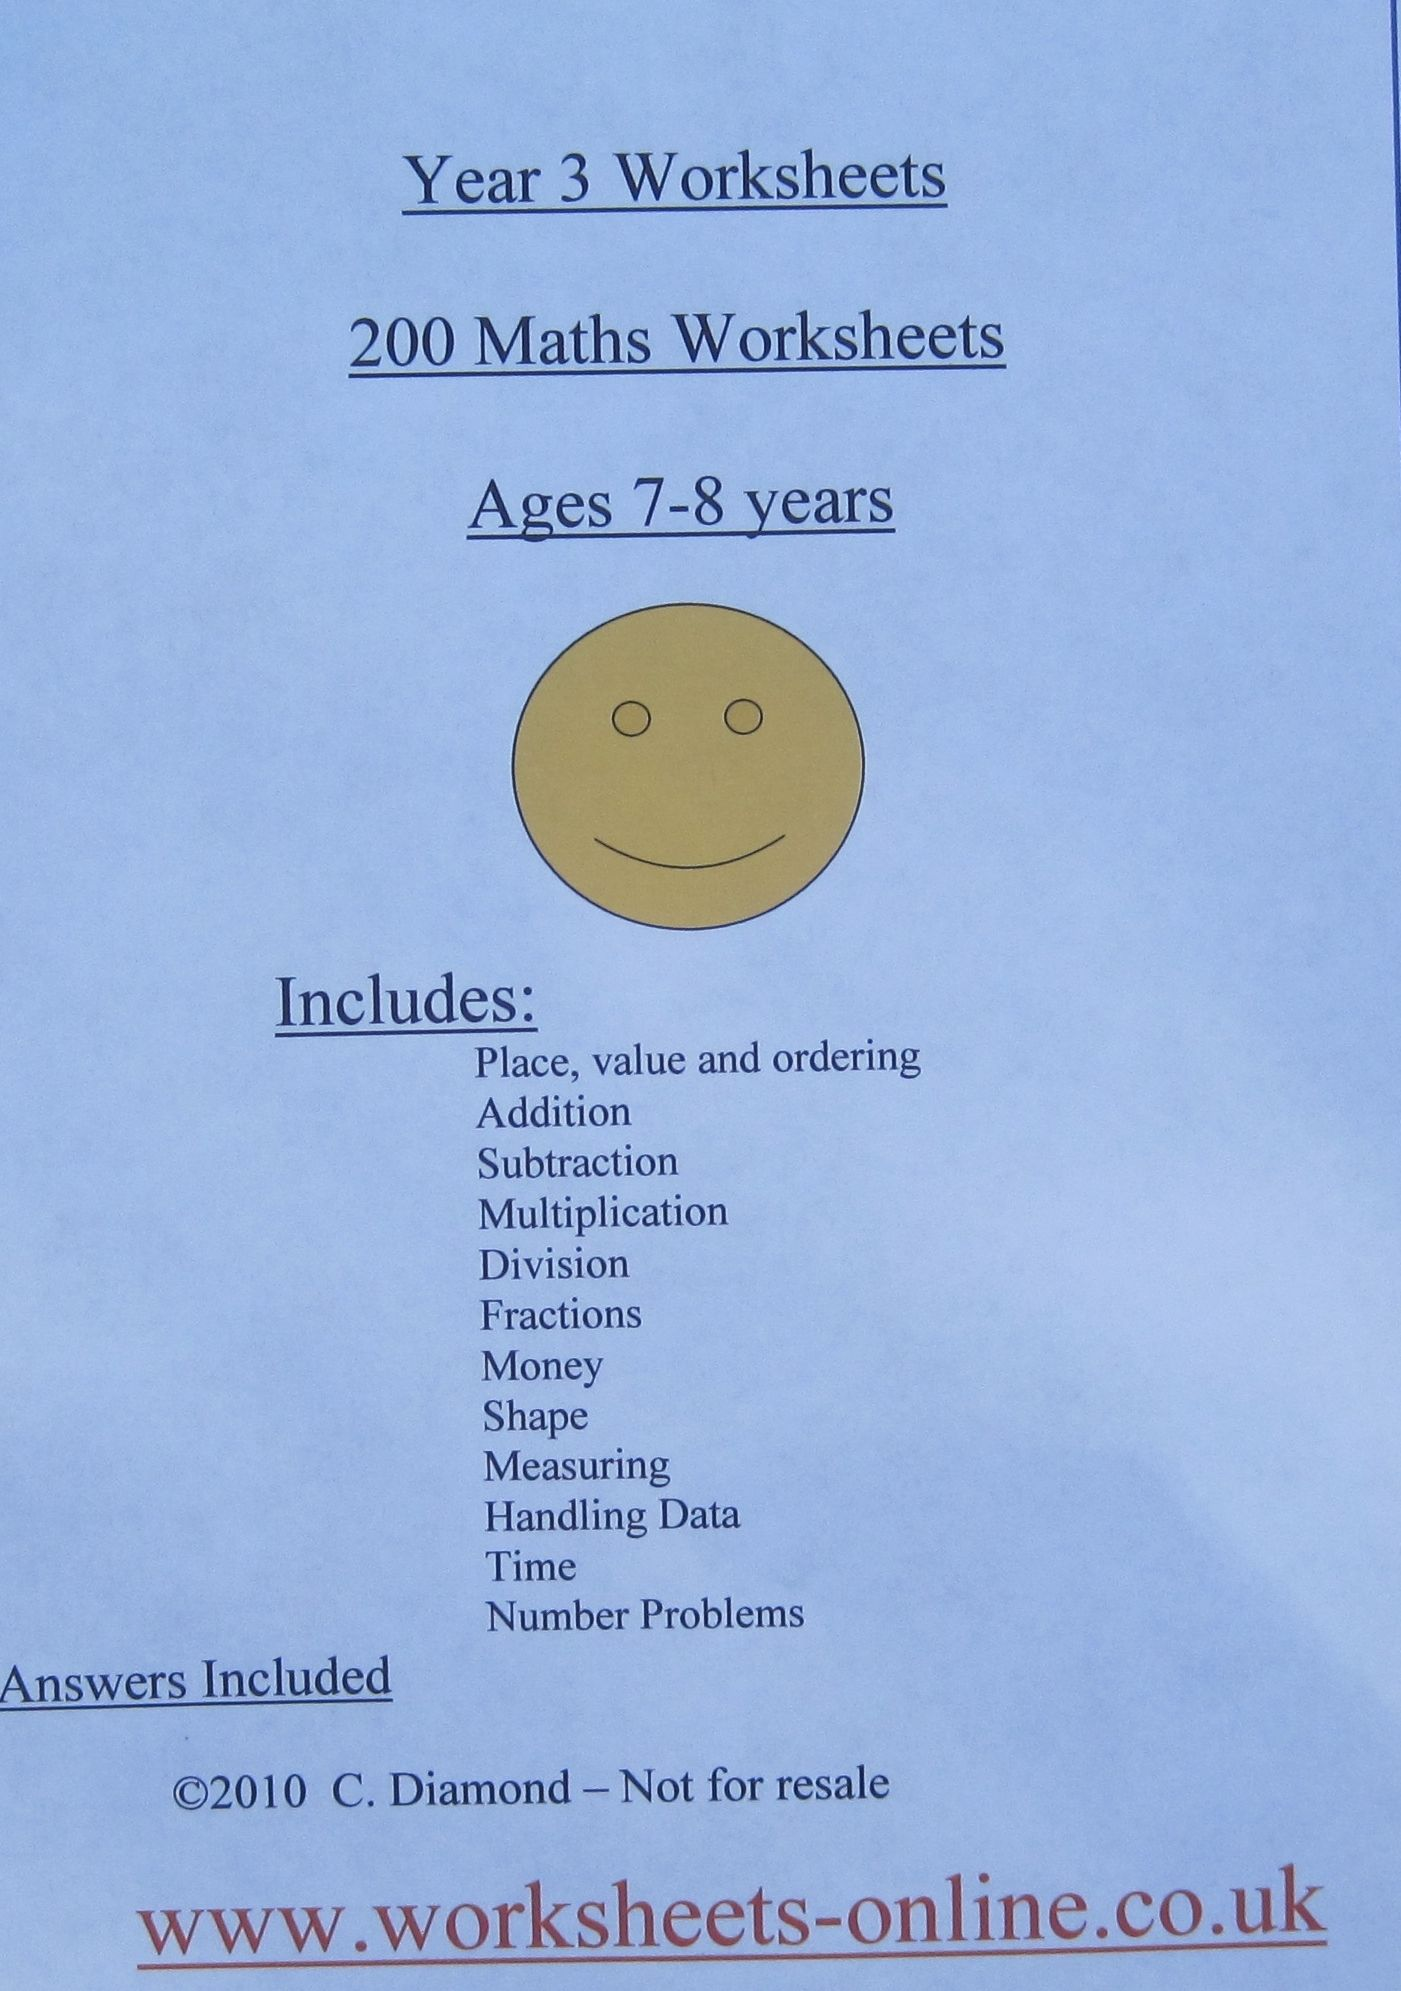 200 Year 3 Maths Worksheets for children aged 7 - 8 years old.   Year 3  maths worksheets [ 1991 x 1401 Pixel ]